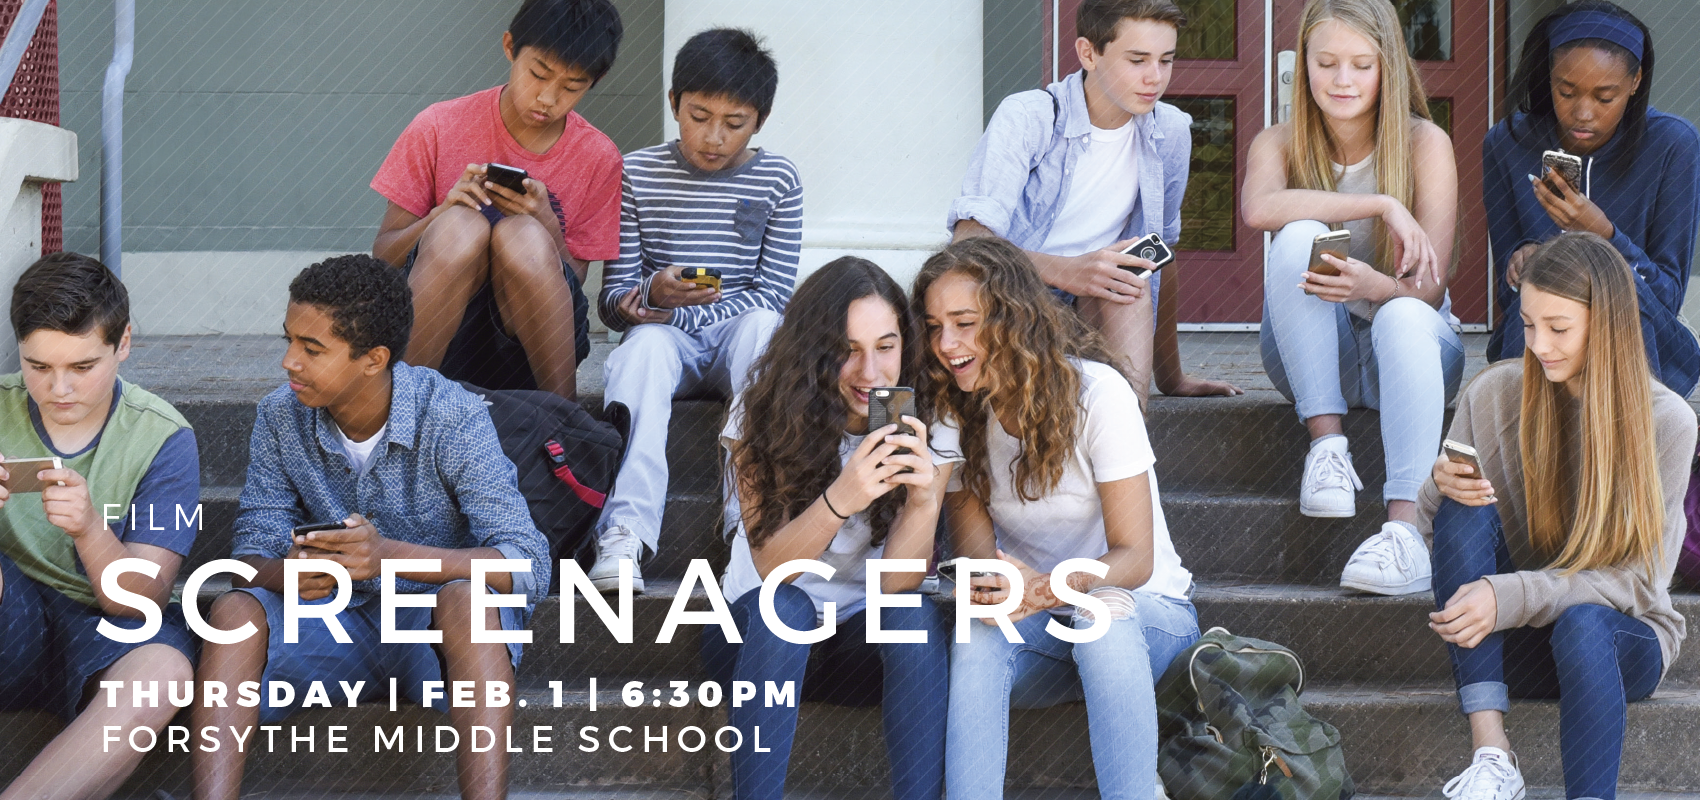 Film and Discussion: Screenagers. Film about screen addiction in children.